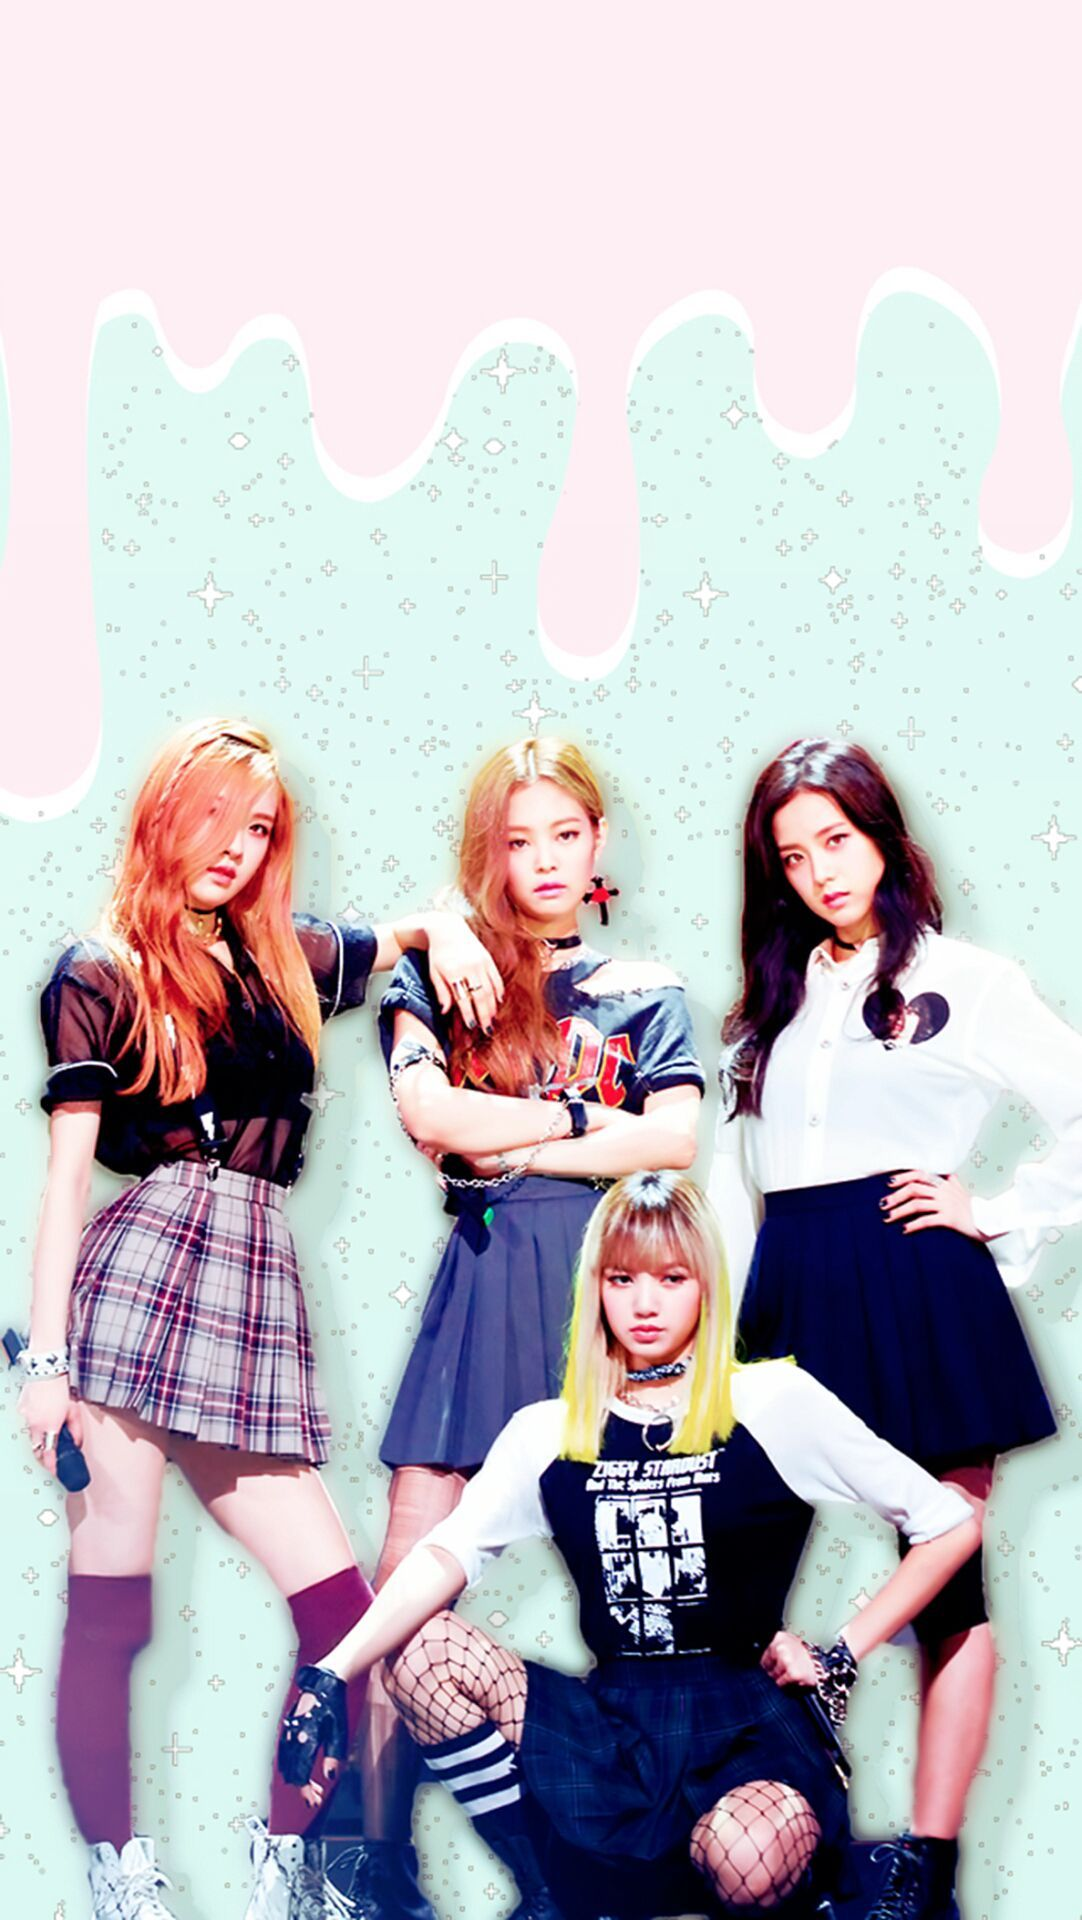 blackpink wallpapers hayrankurgu Hayran Kurgu